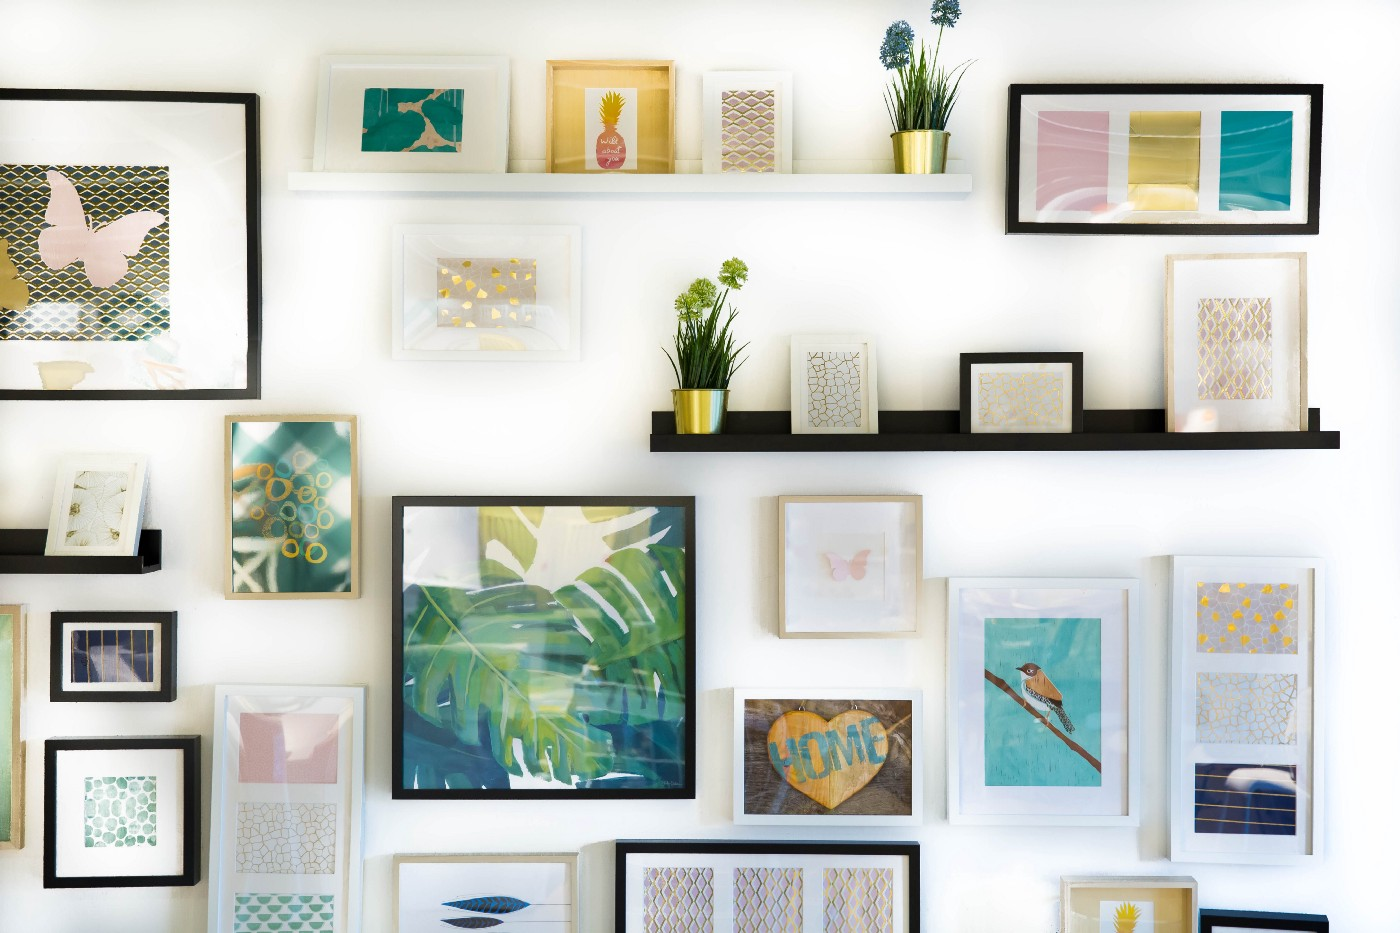 pictures and shelves of decorative objects arranged on a wall